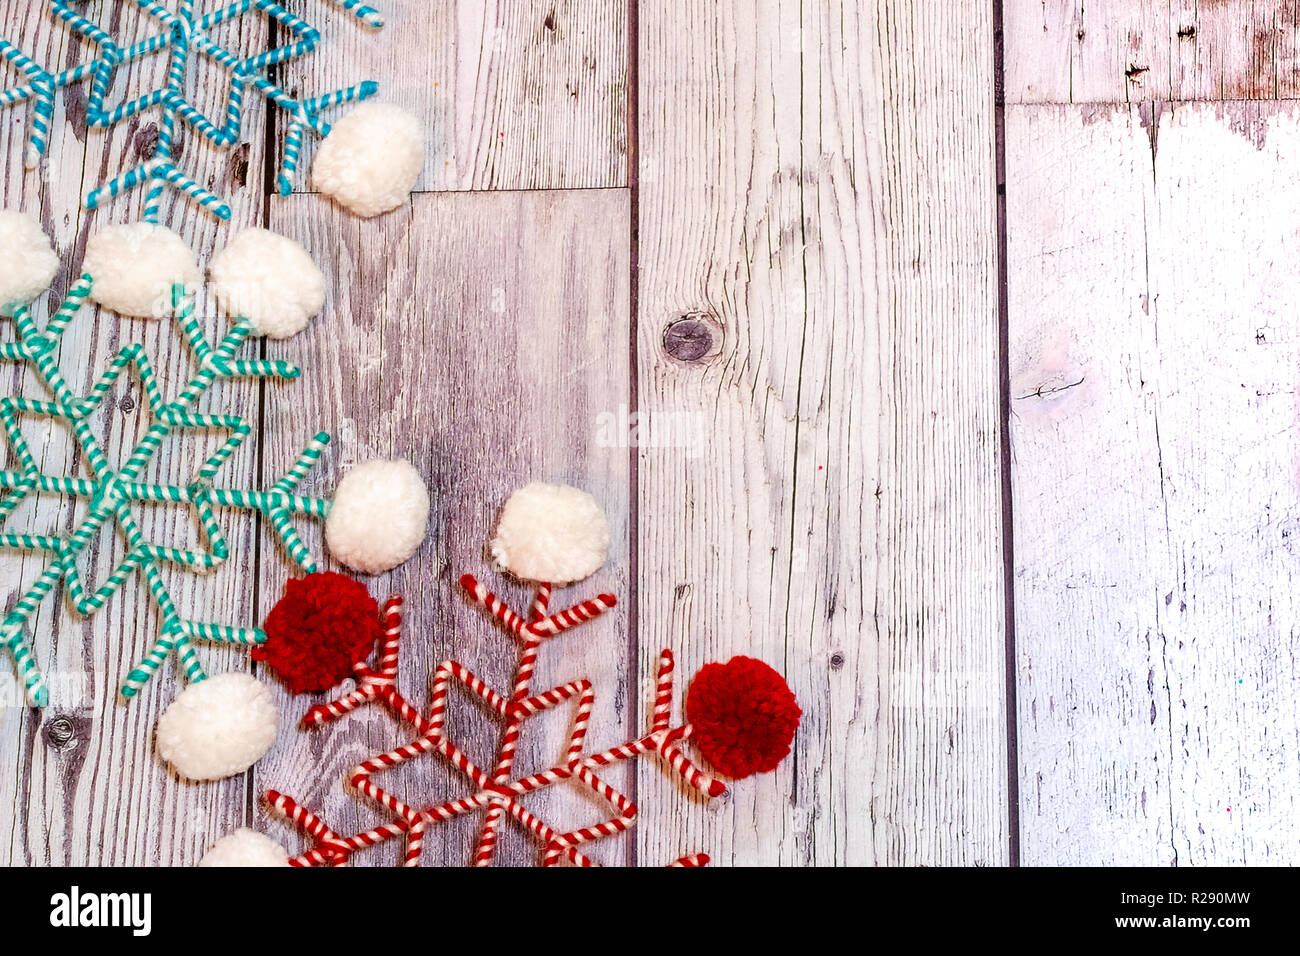 Pom Pom Twine Fabric Snowflakes In White Red And Teal